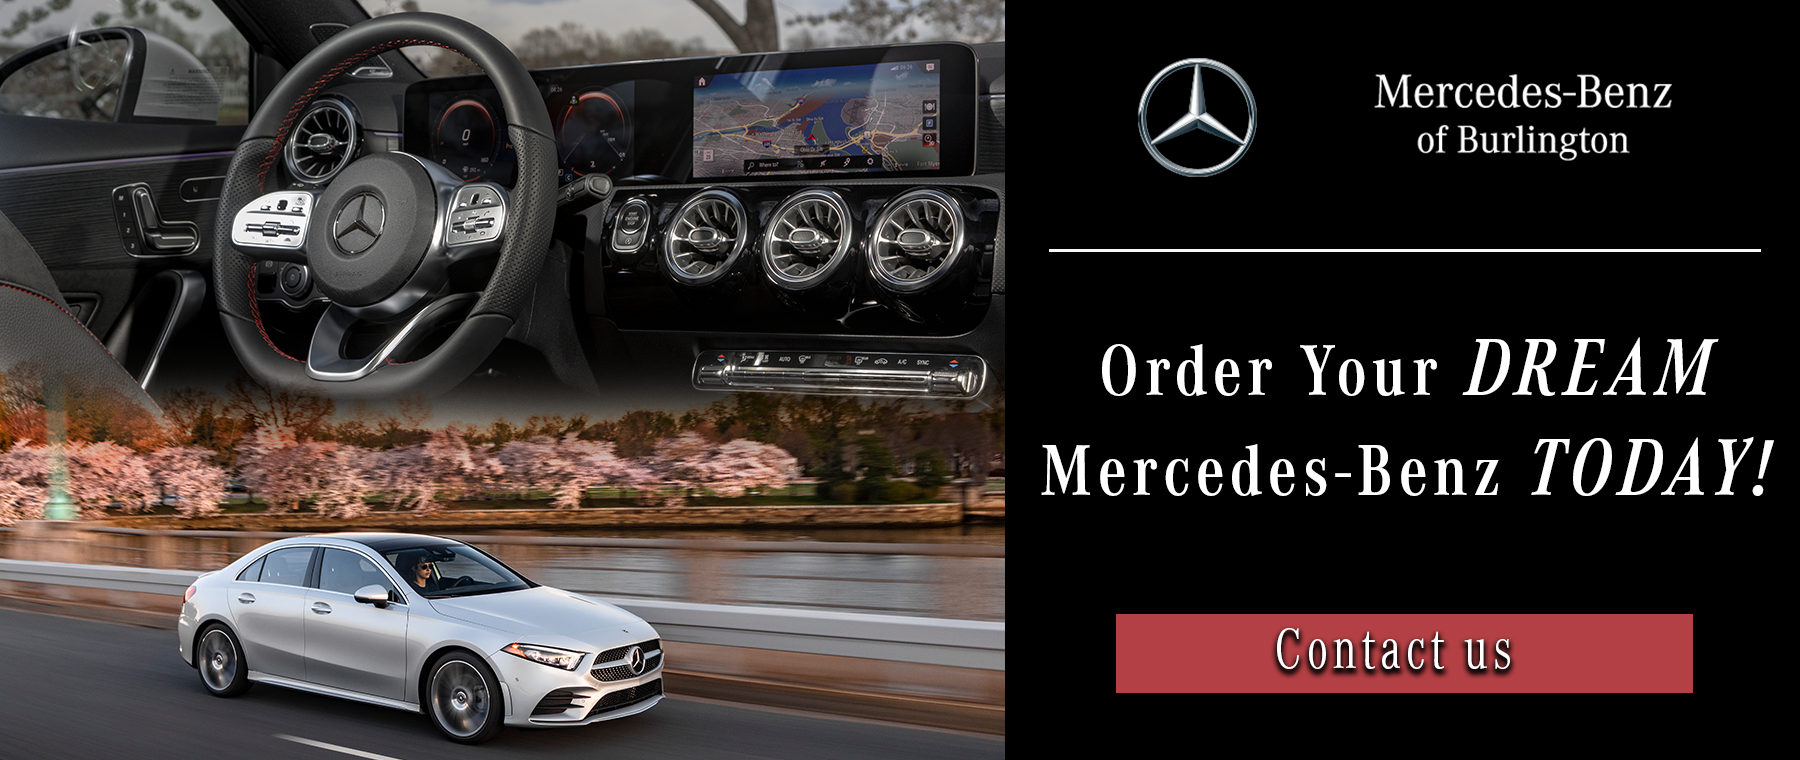 Order MB Vehicle Today